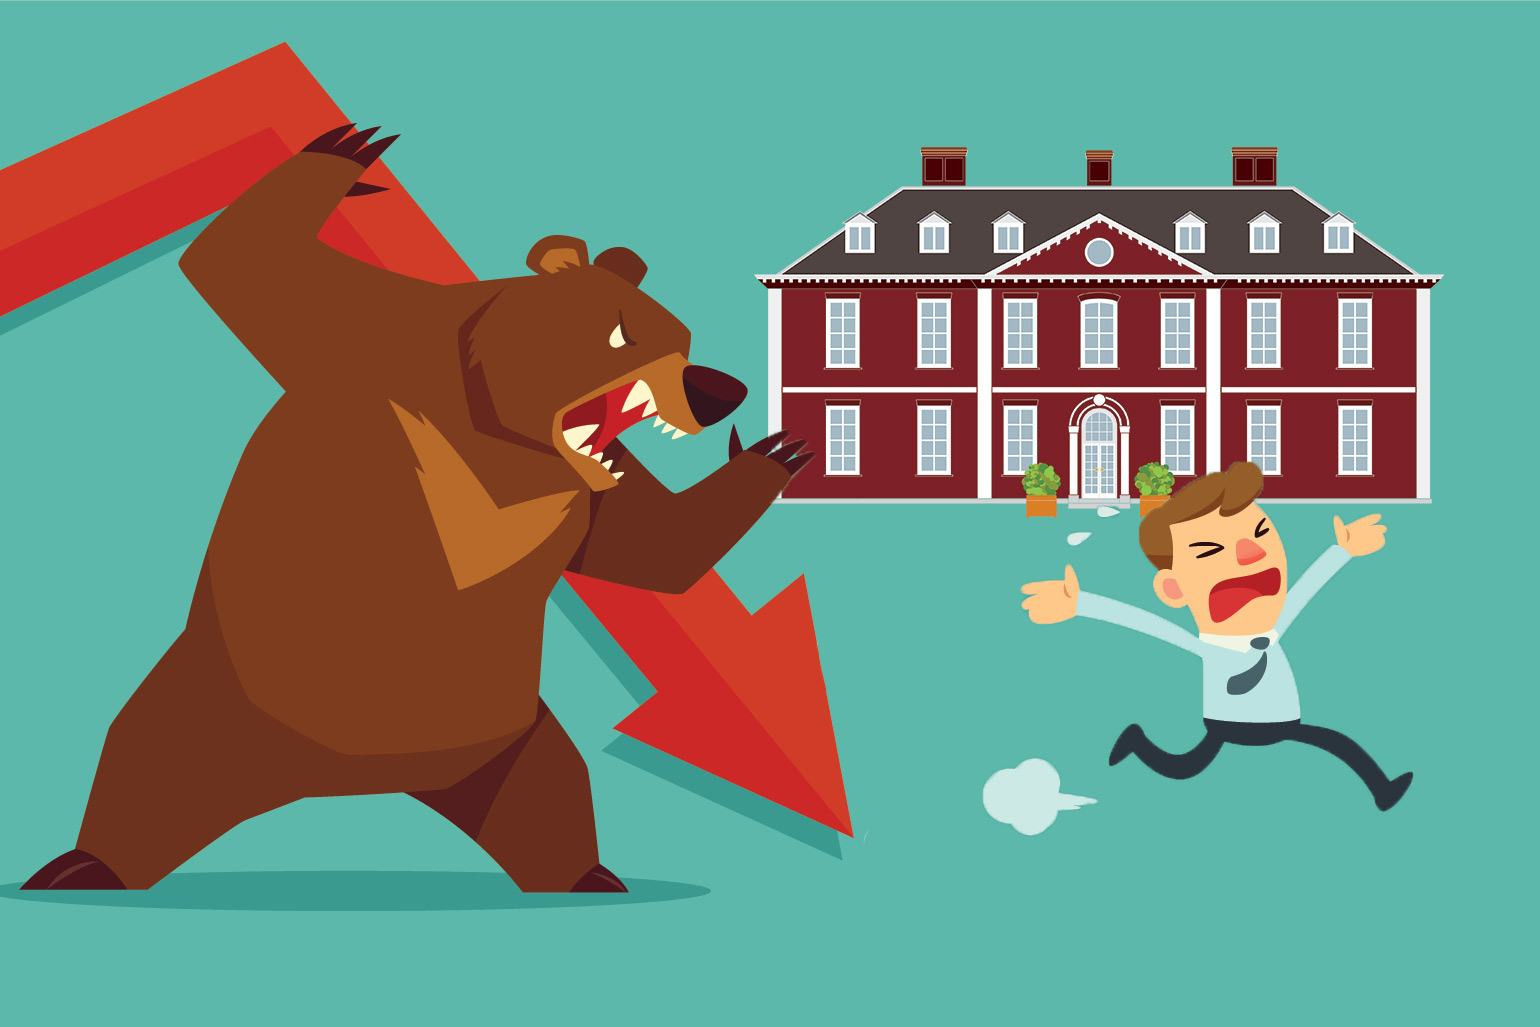 bear-market-mansion.jpg